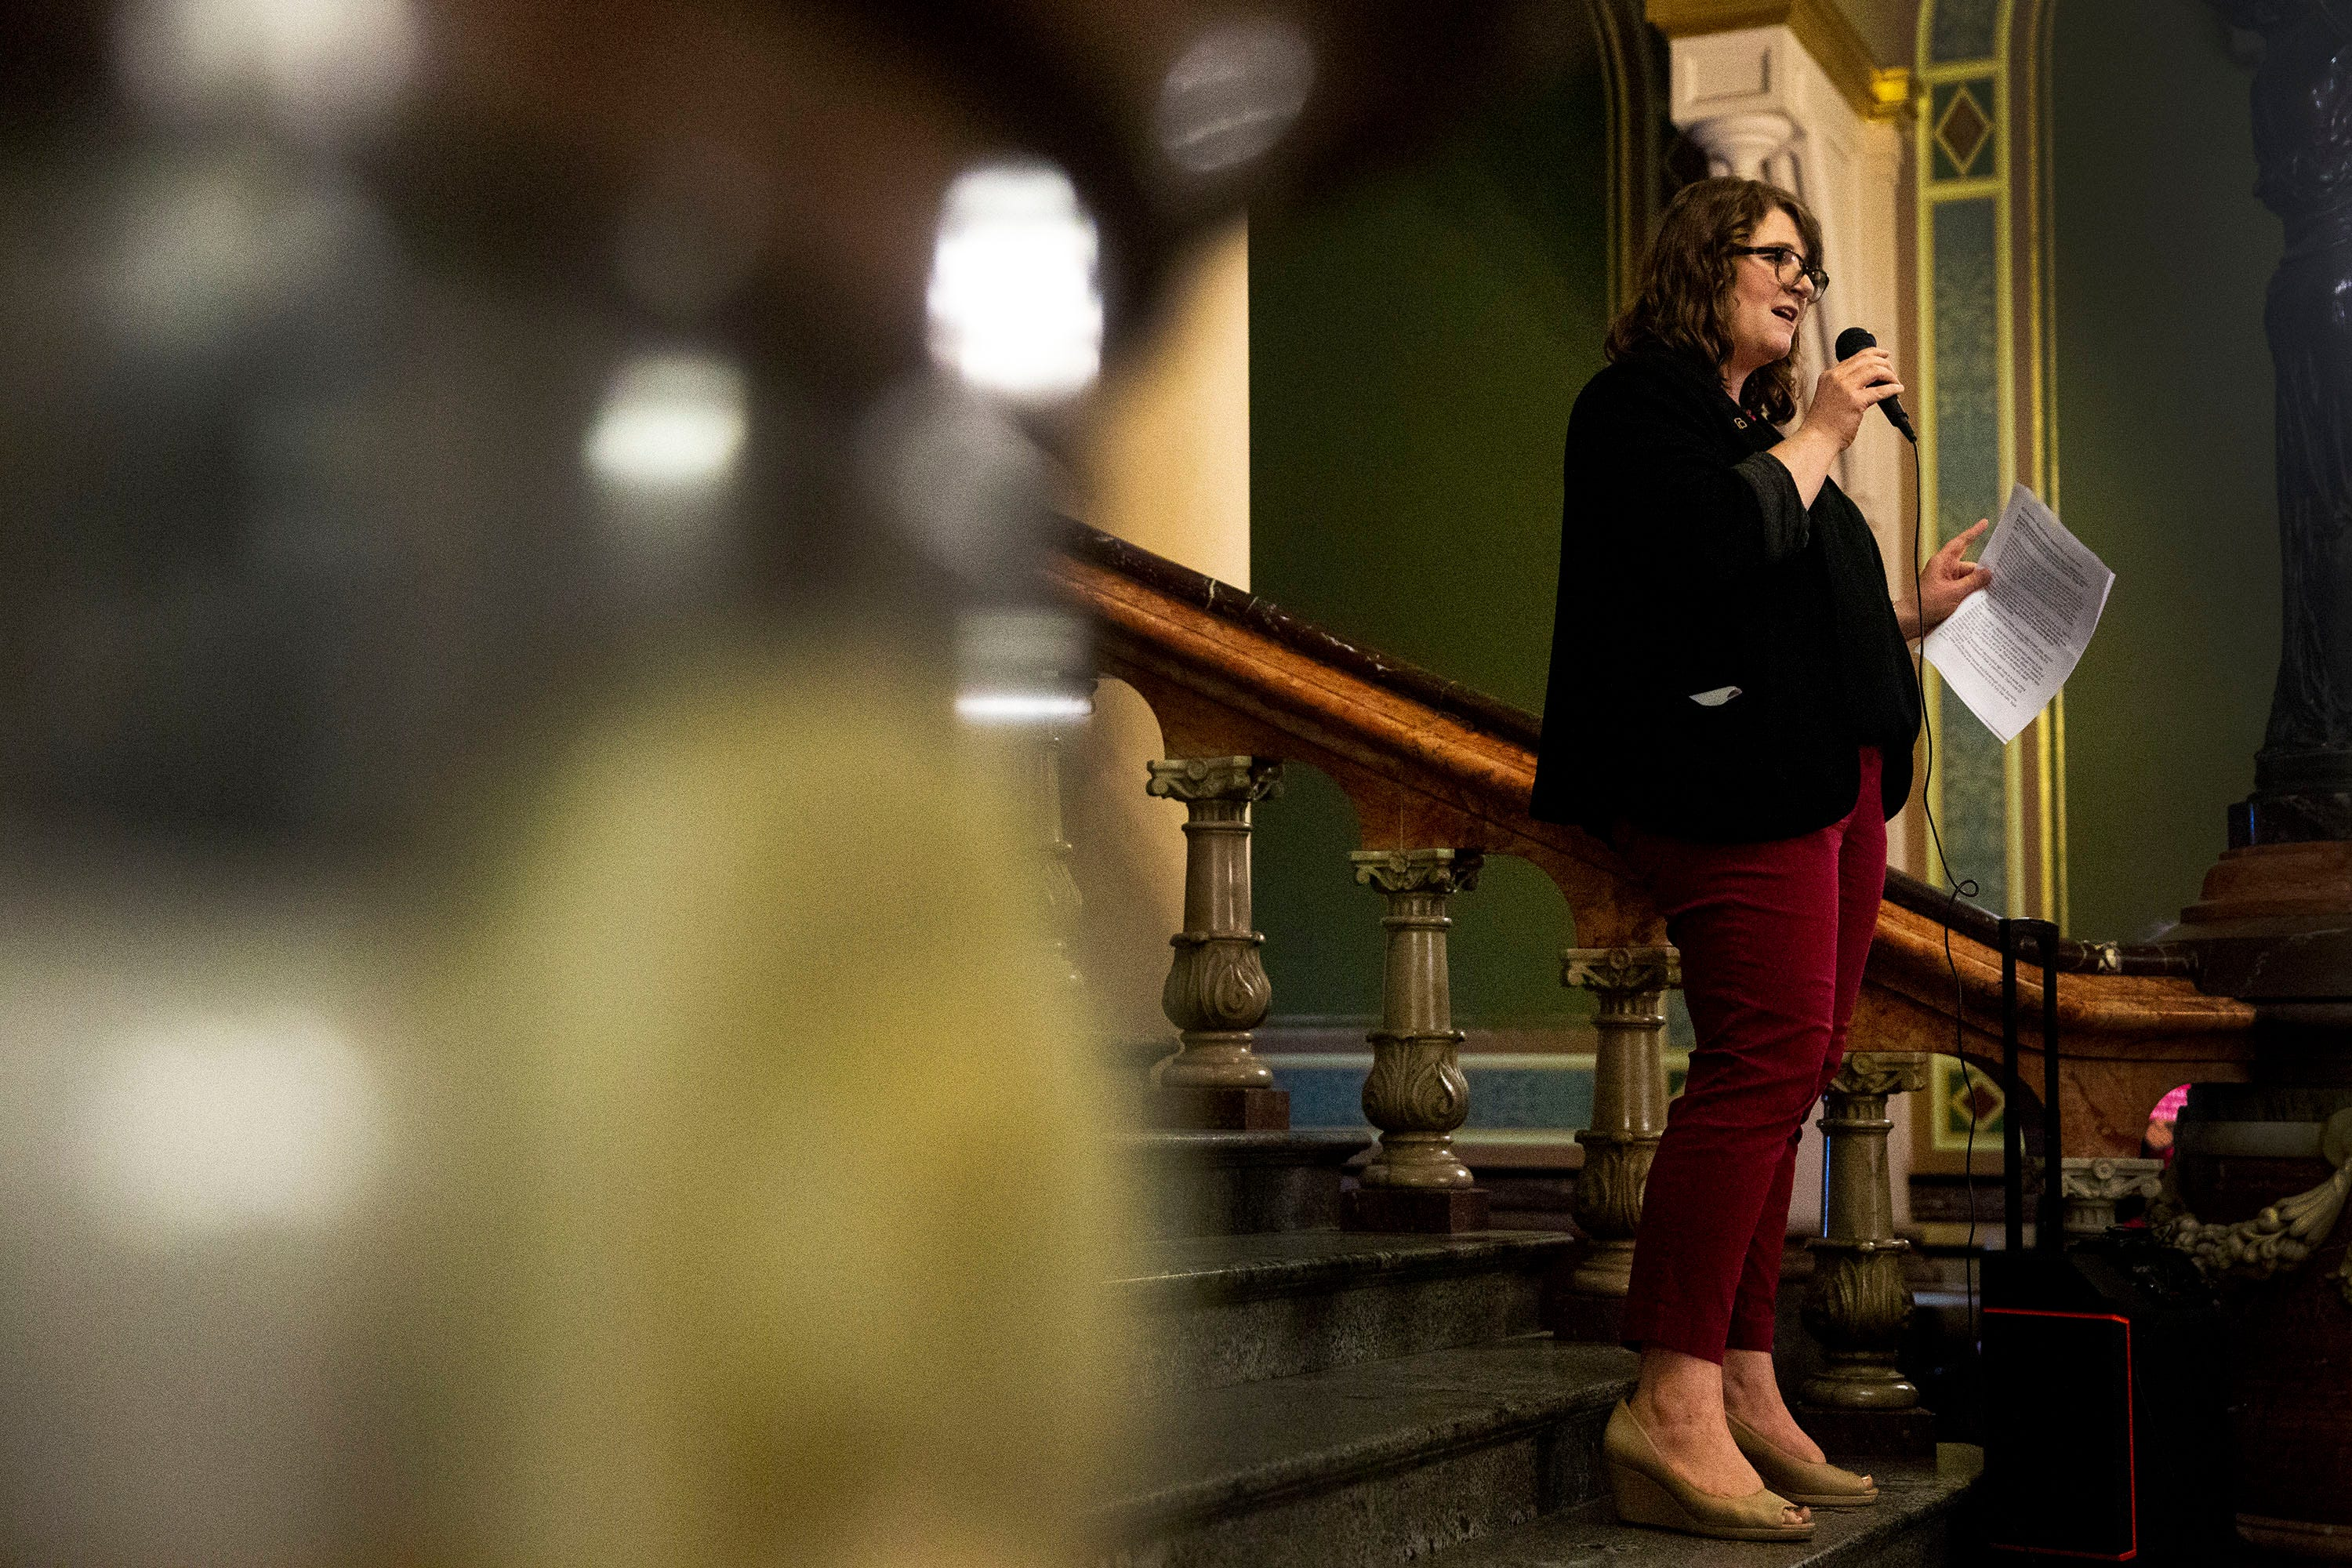 'It's stripping away our rights': In Iowa, crowd gathers to oppose abortion restrictions